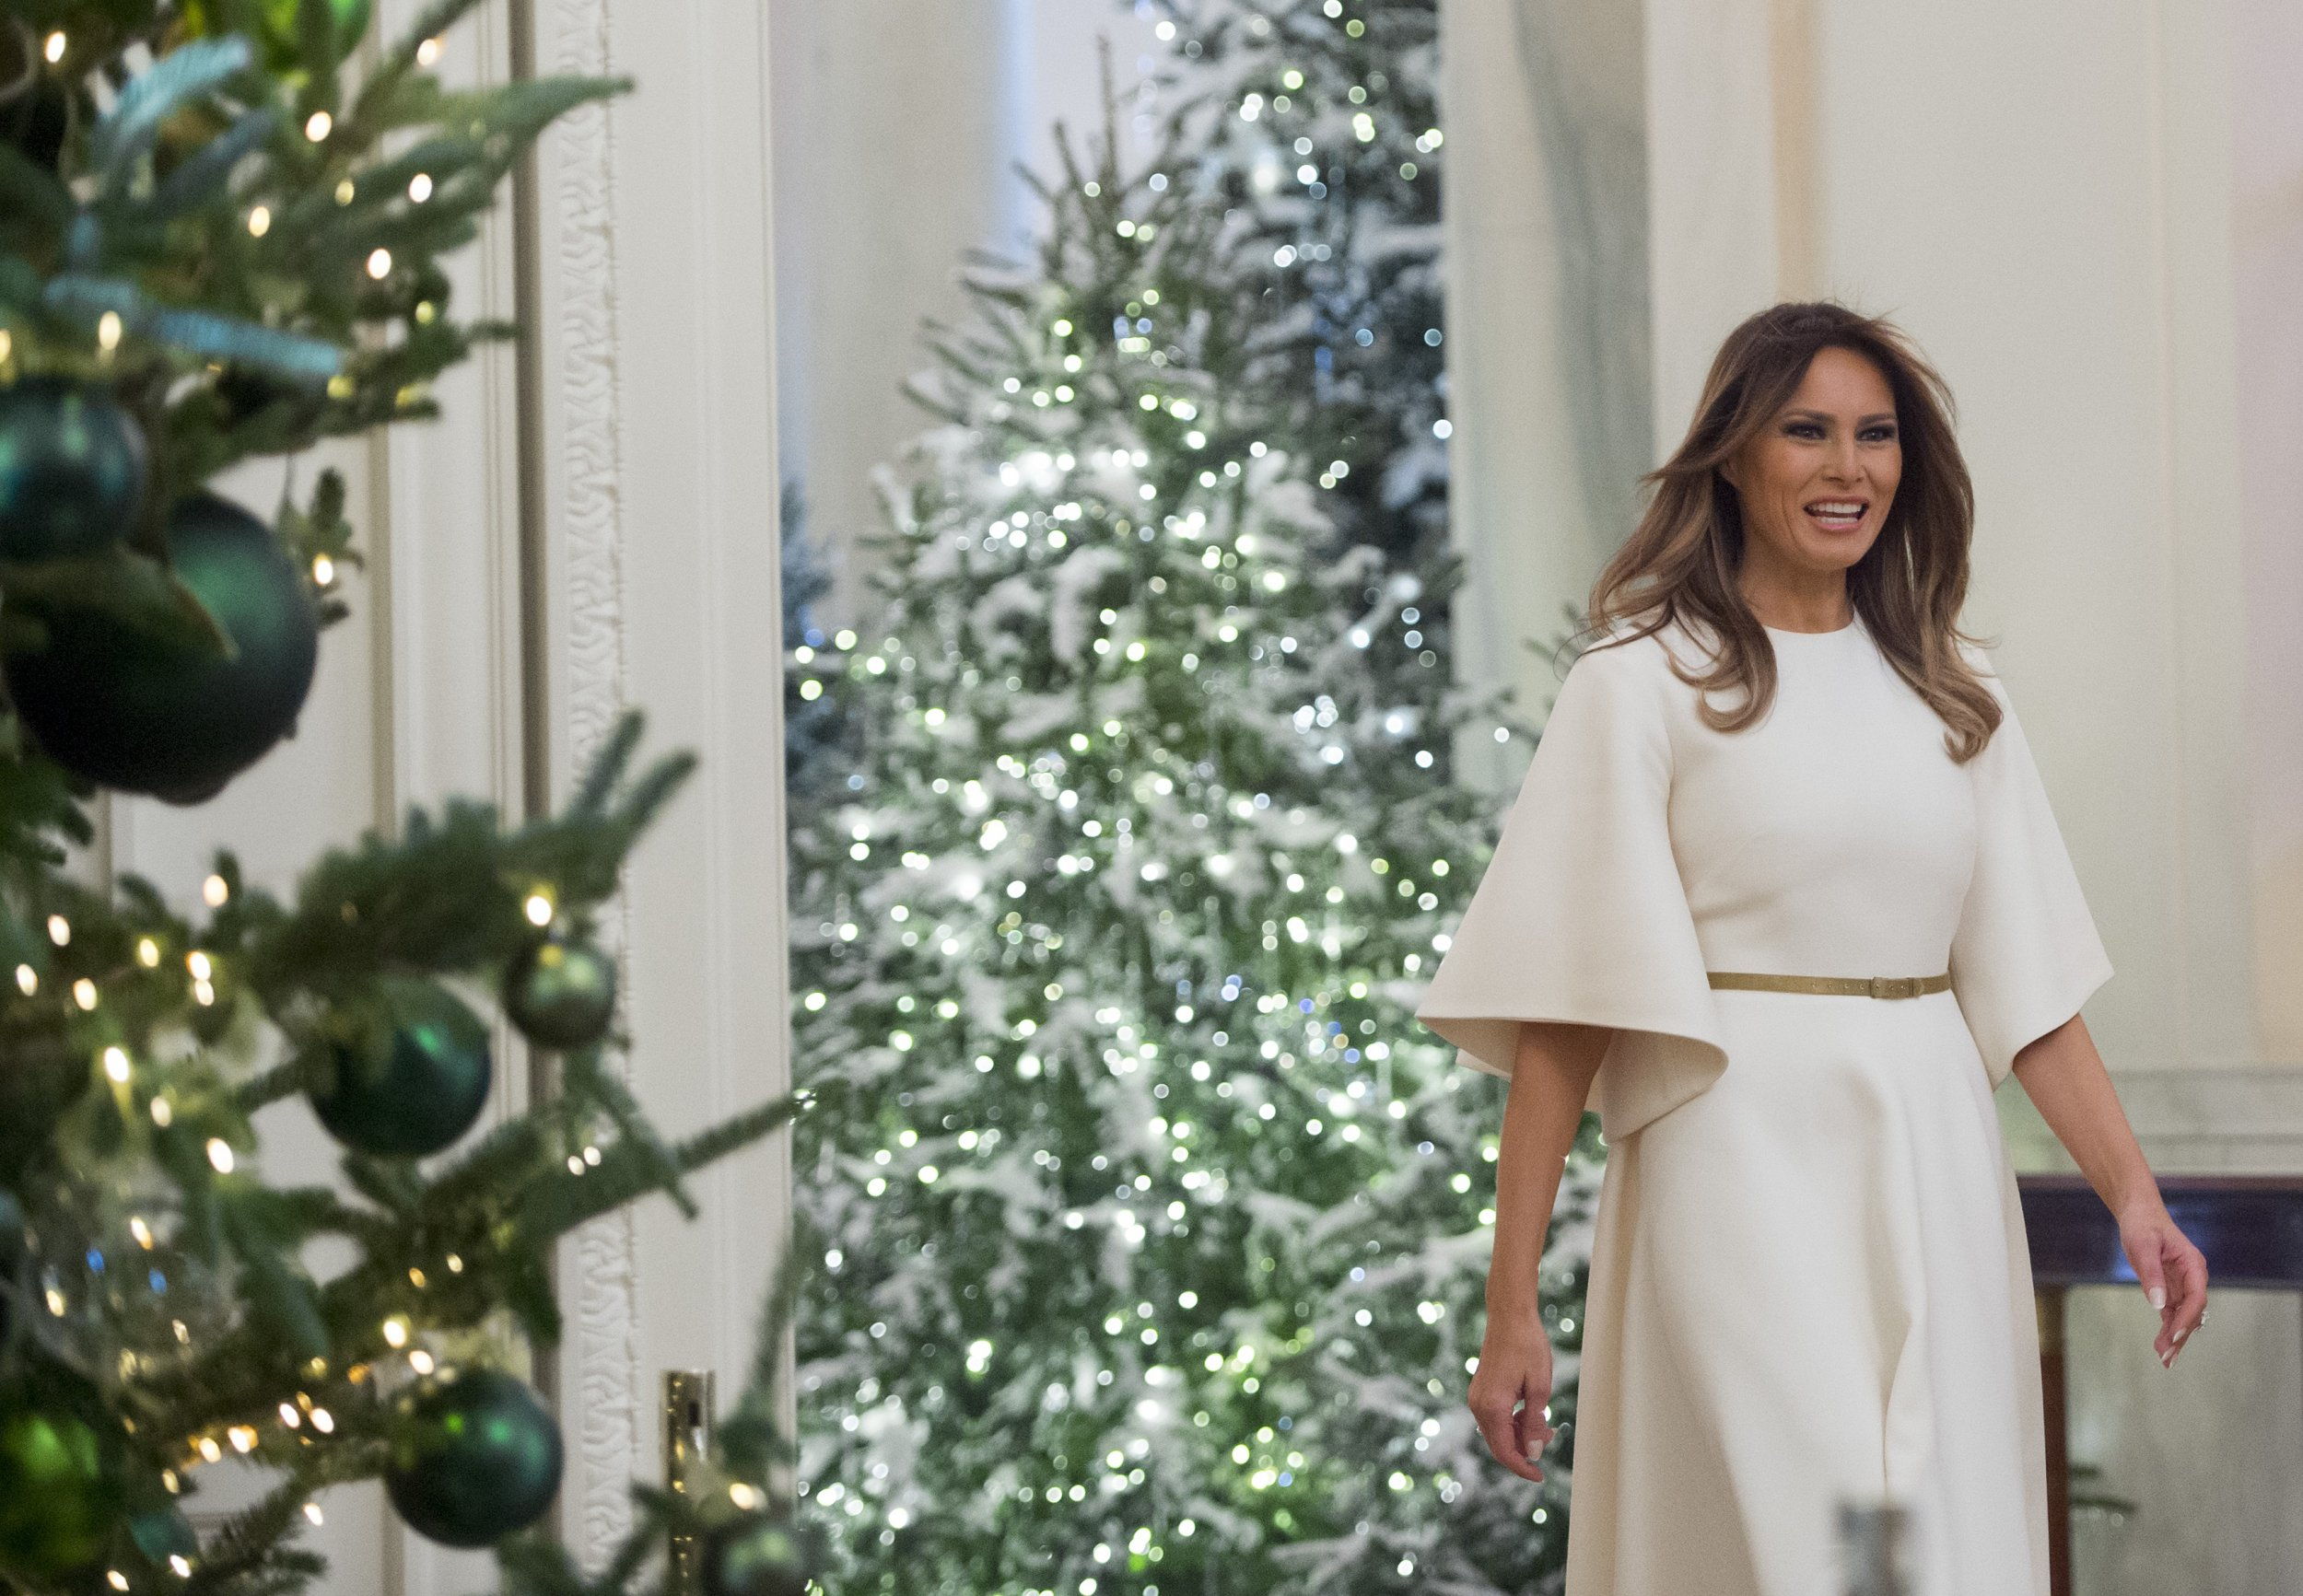 Melania Trumps Christmas Decorations at the White House